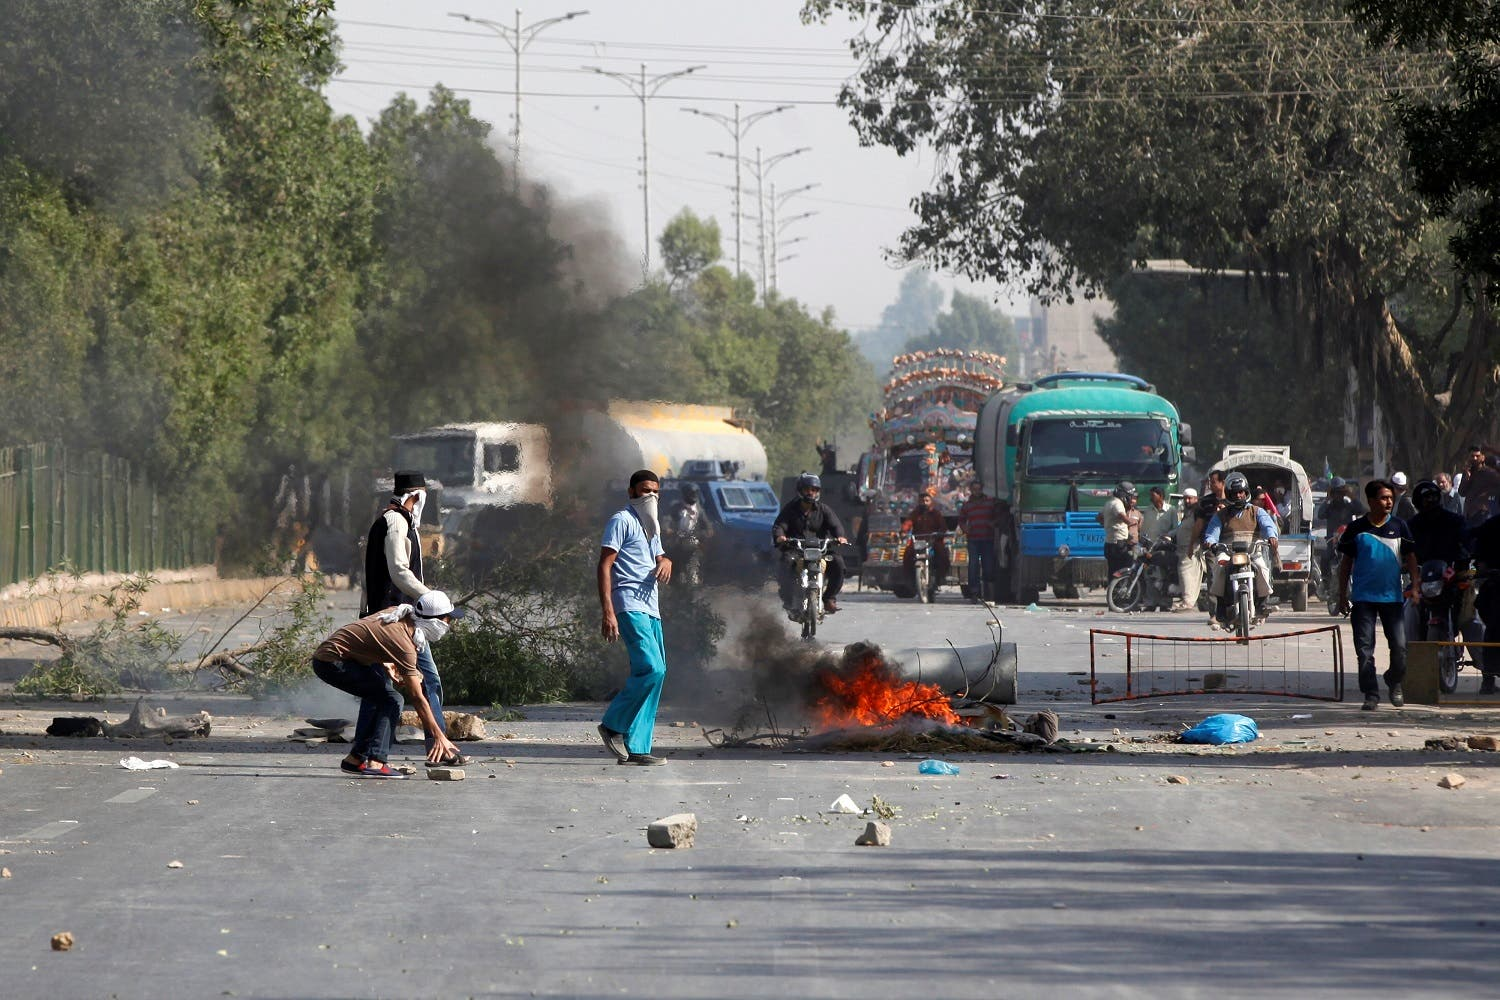 Supporters of the Tehreek-e-Labaik Pakistan place hurdles and block the main road leading to airport in Karachi. (Reuters)